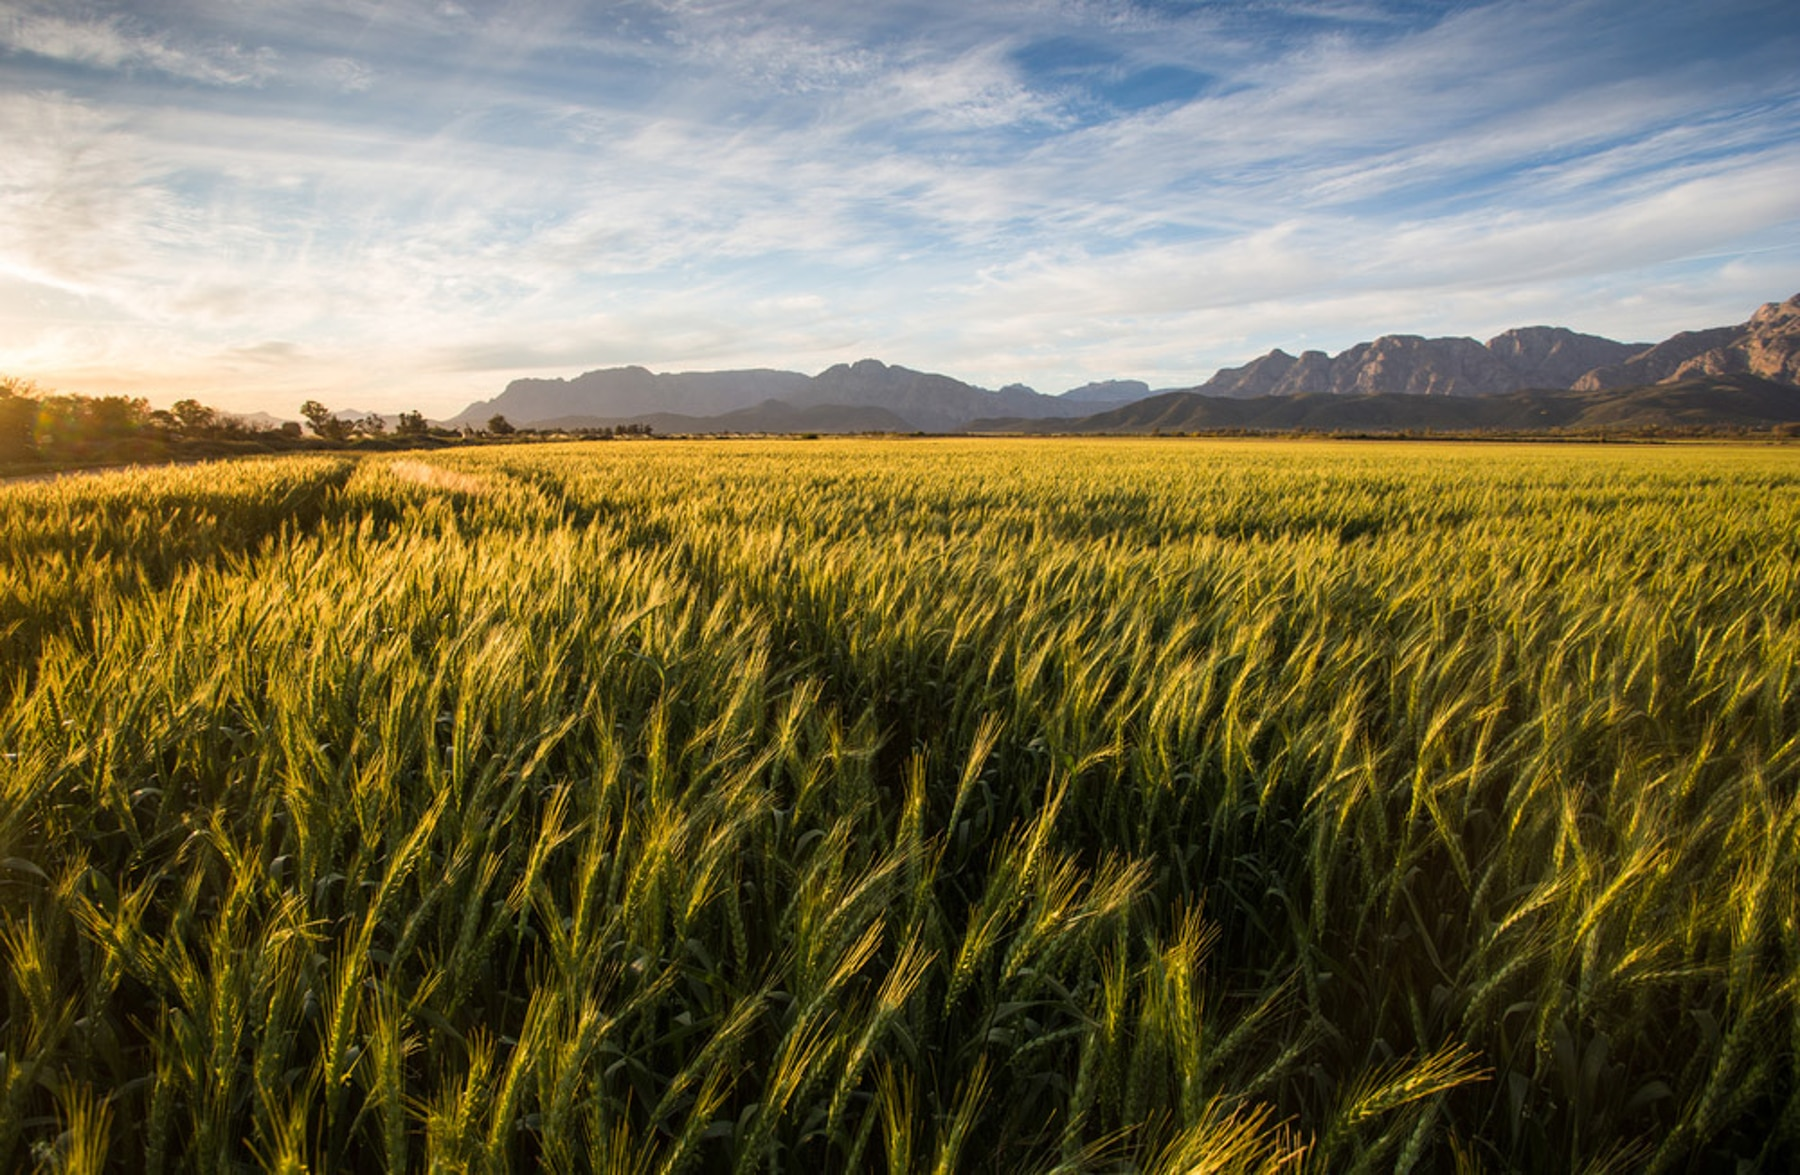 Wheat field with mountains in distance (Shutterstock)